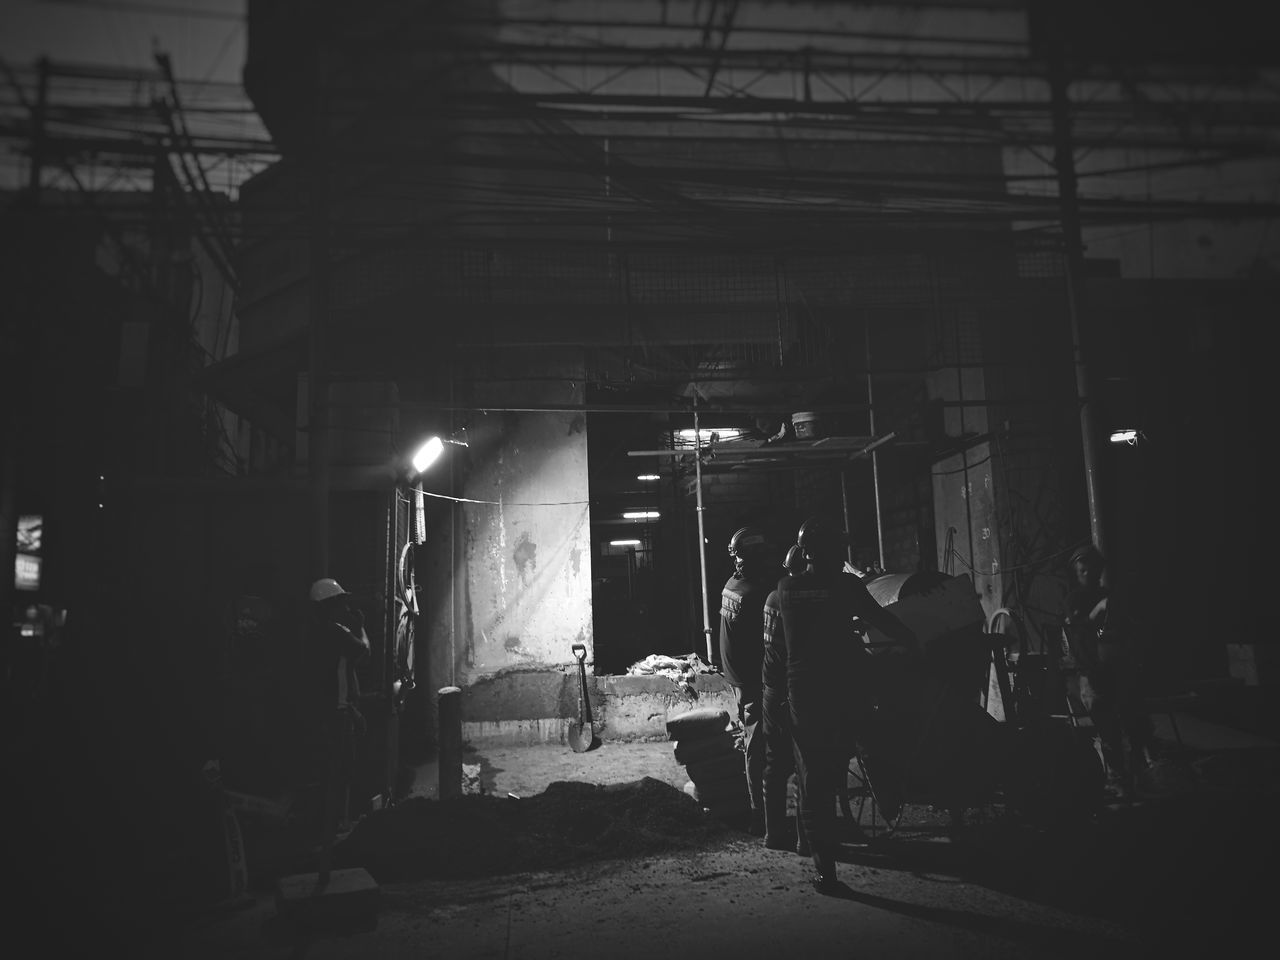 Overtime. City Cityscape Built Structure City Life Development First Eyeem Photo Architecture Street Street Photography Still Life Streetphotography Streetphoto_bw Blackandwhite Blackandwhite Photography Black&white Black And White